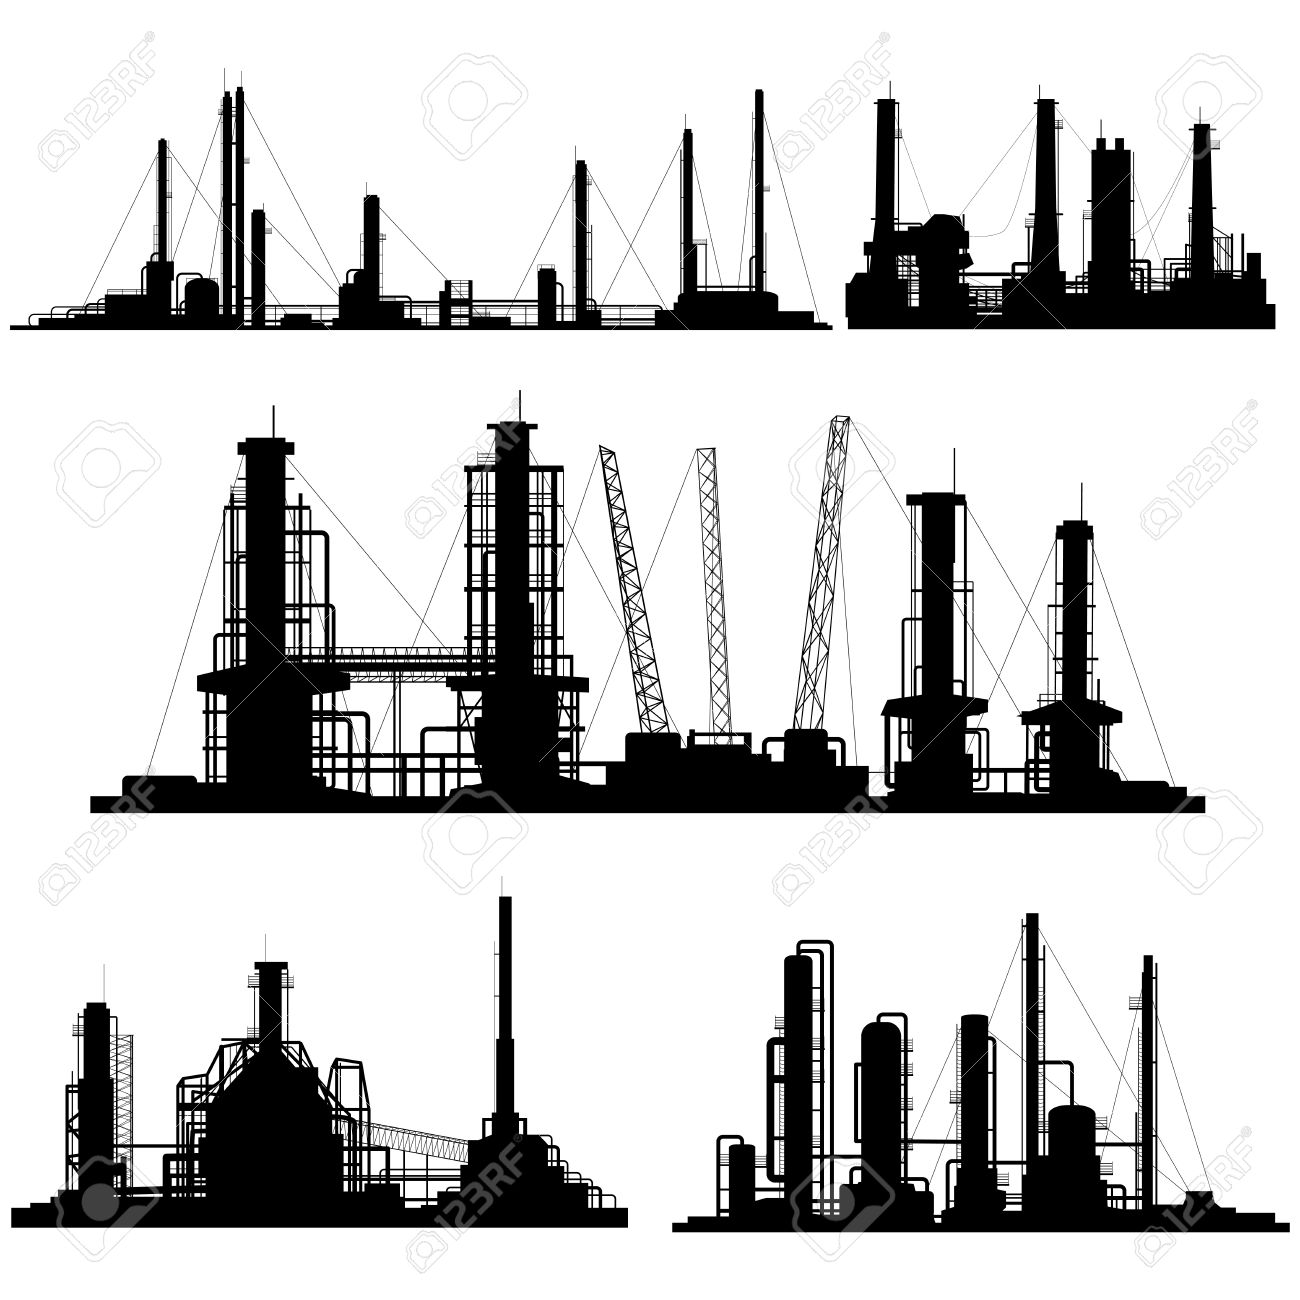 Set of silhouettes of  industrial part of city (factories, refineries and power plants). Stock Vector - 19377721